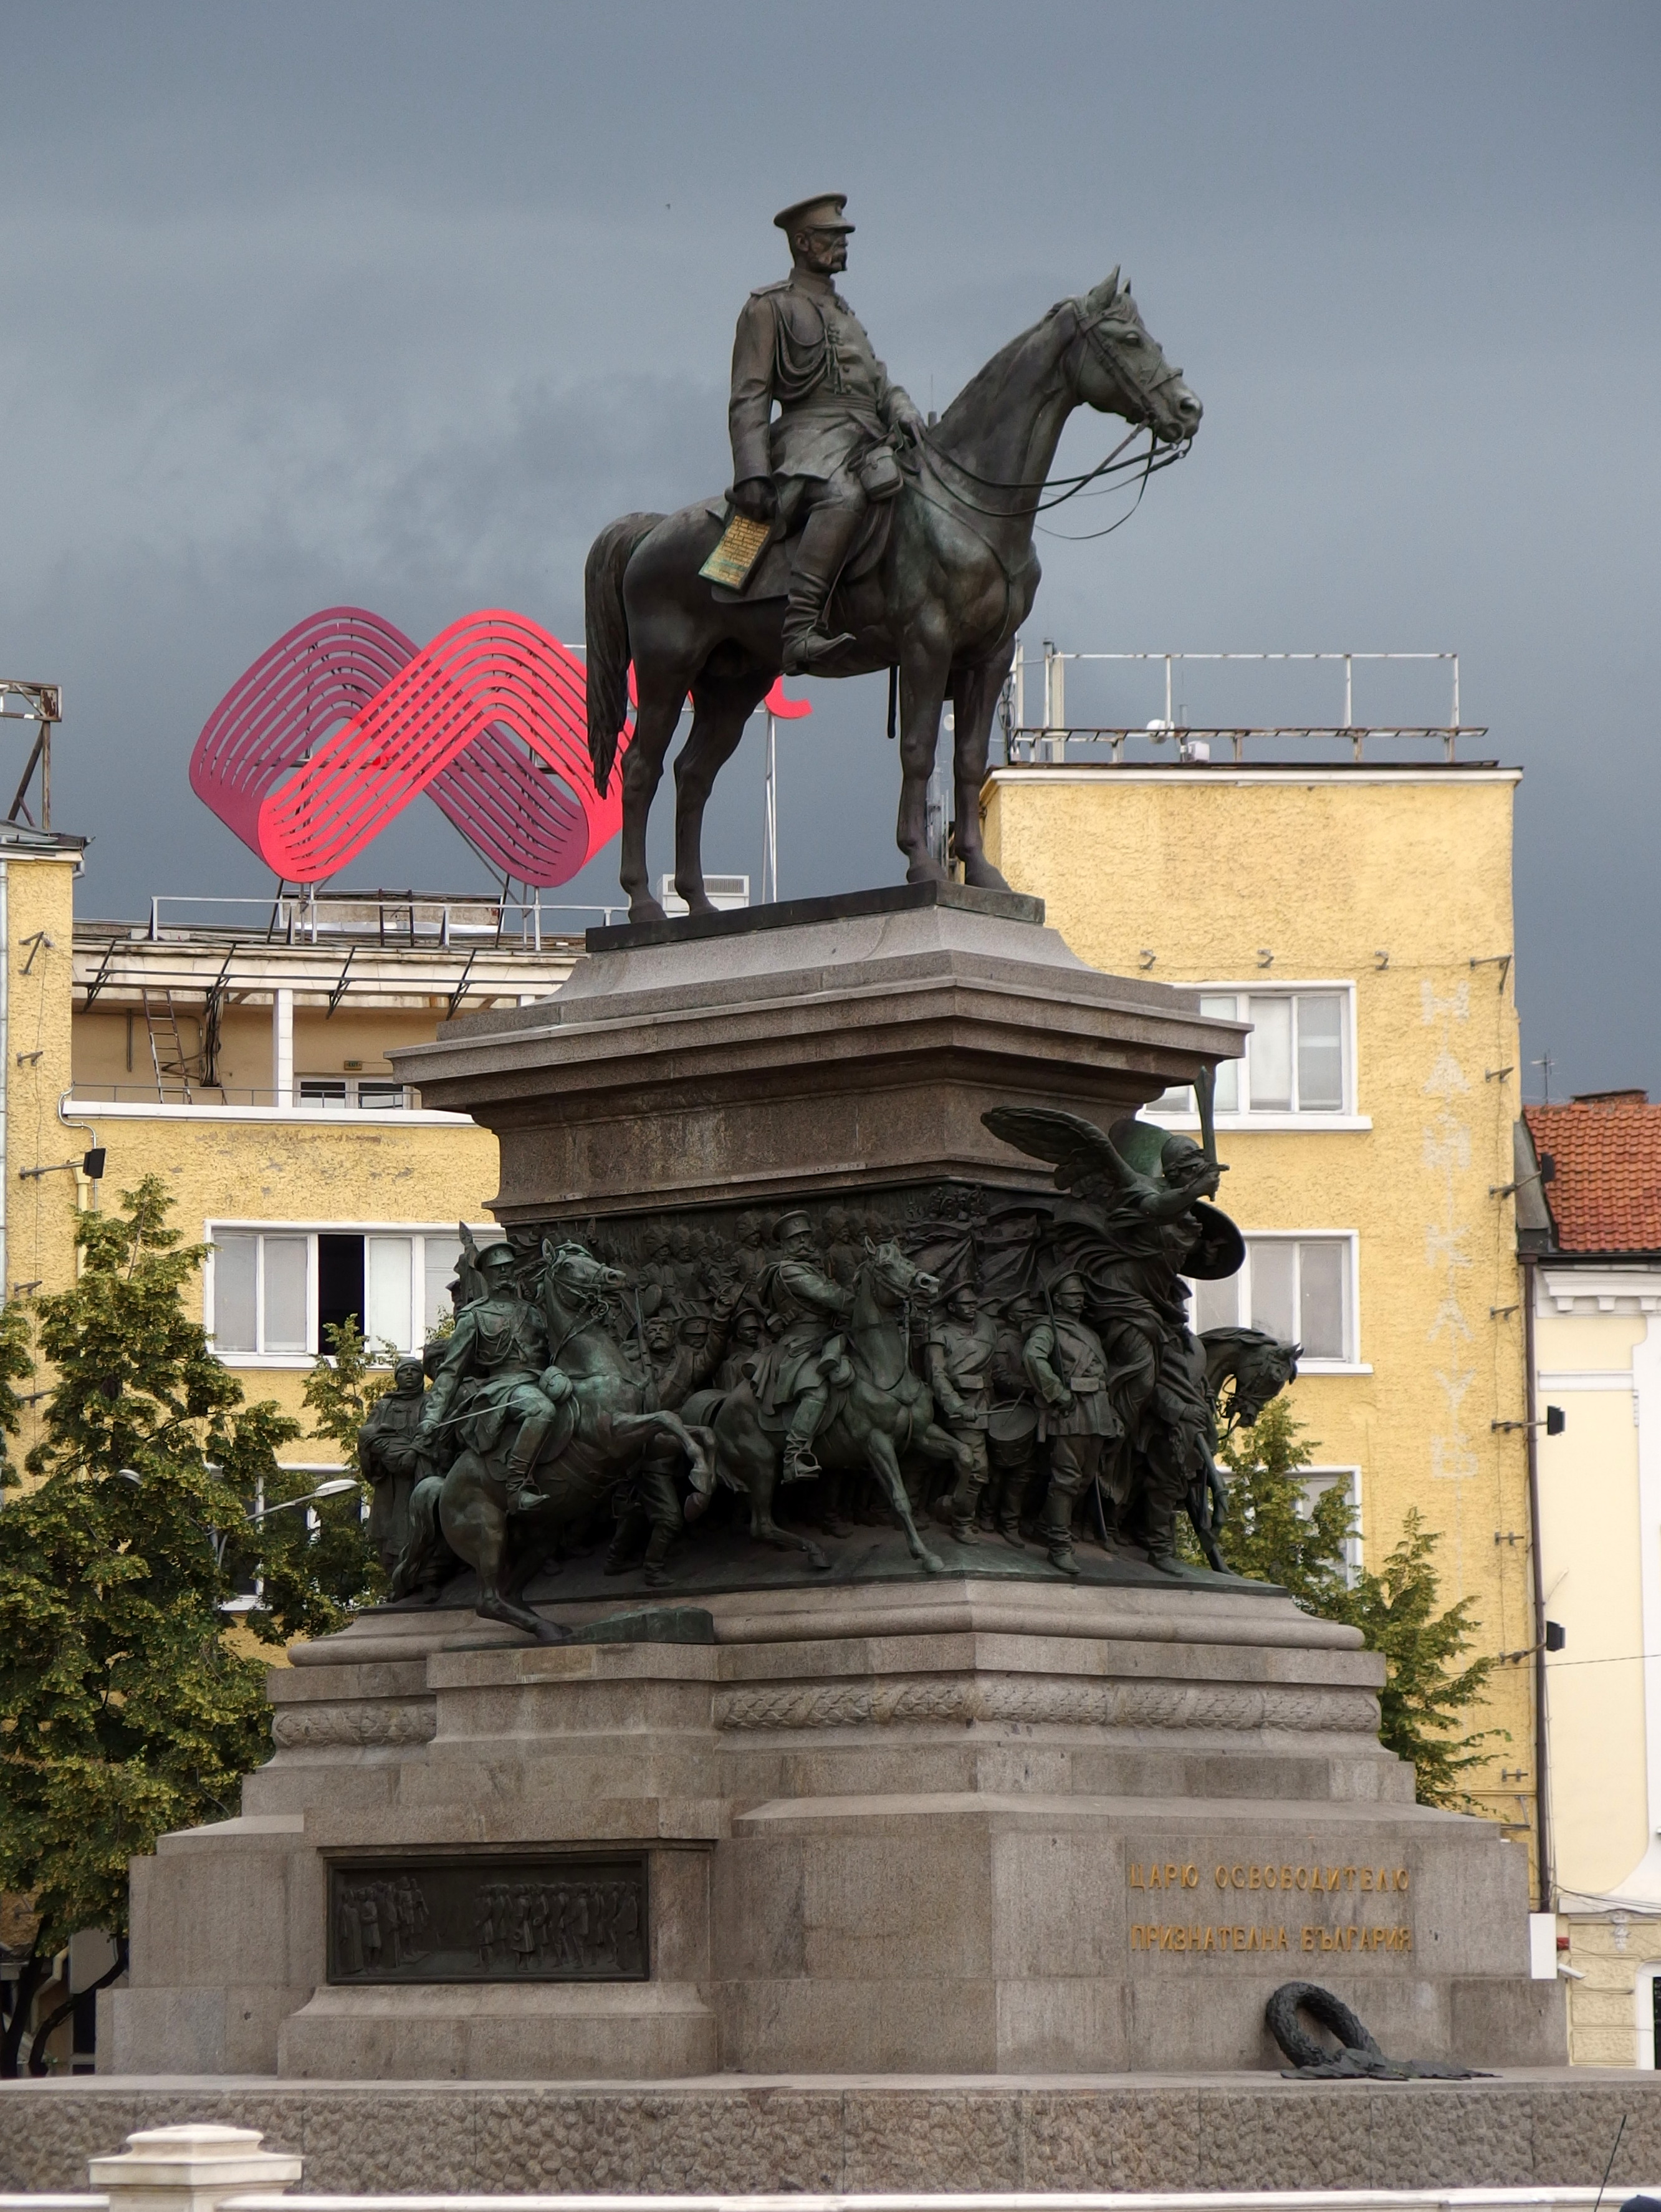 Monuments to artists and their characters